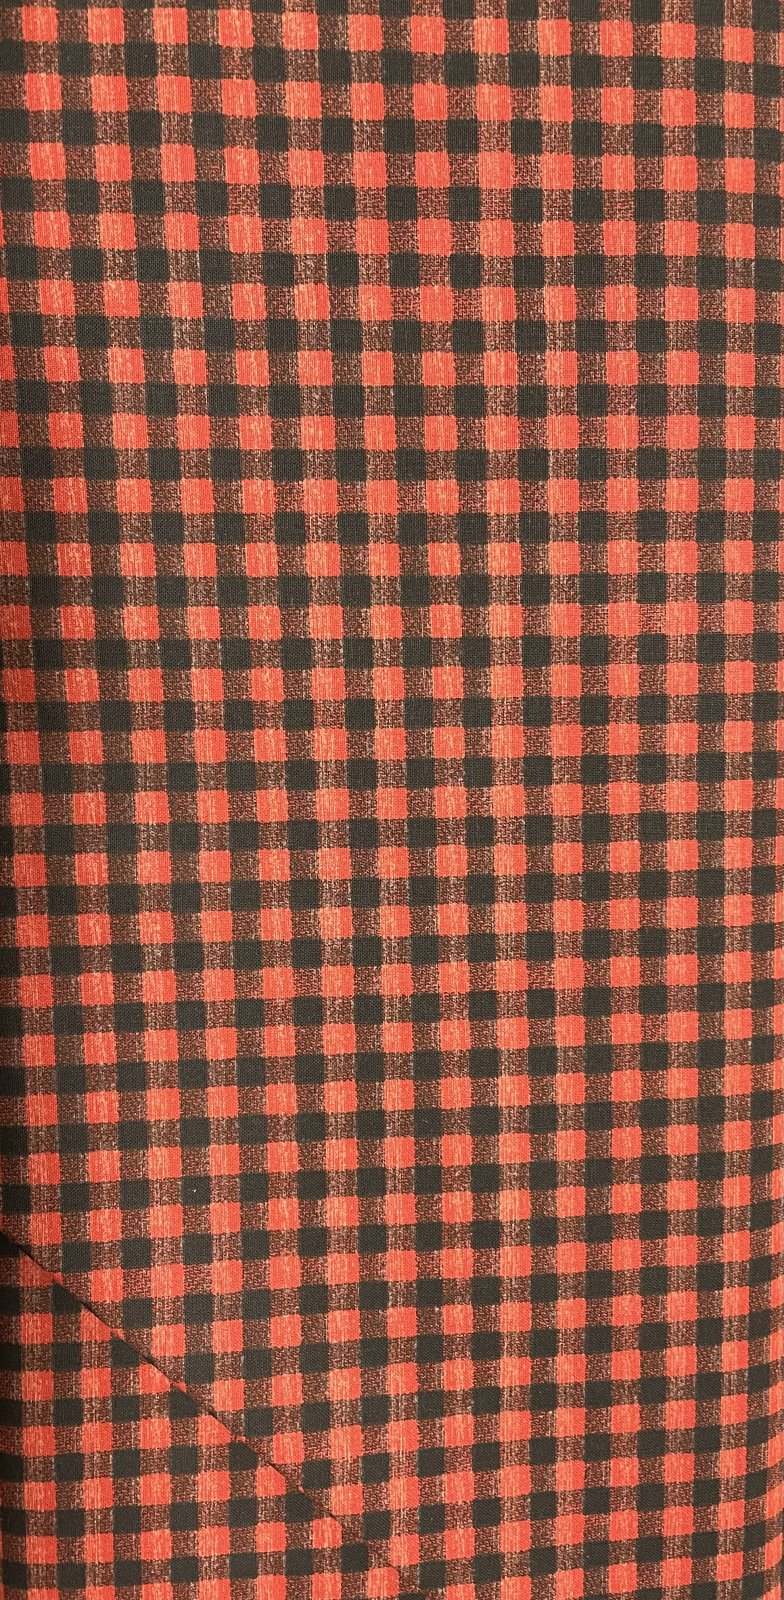 Jingle All The Way - Red Plaid